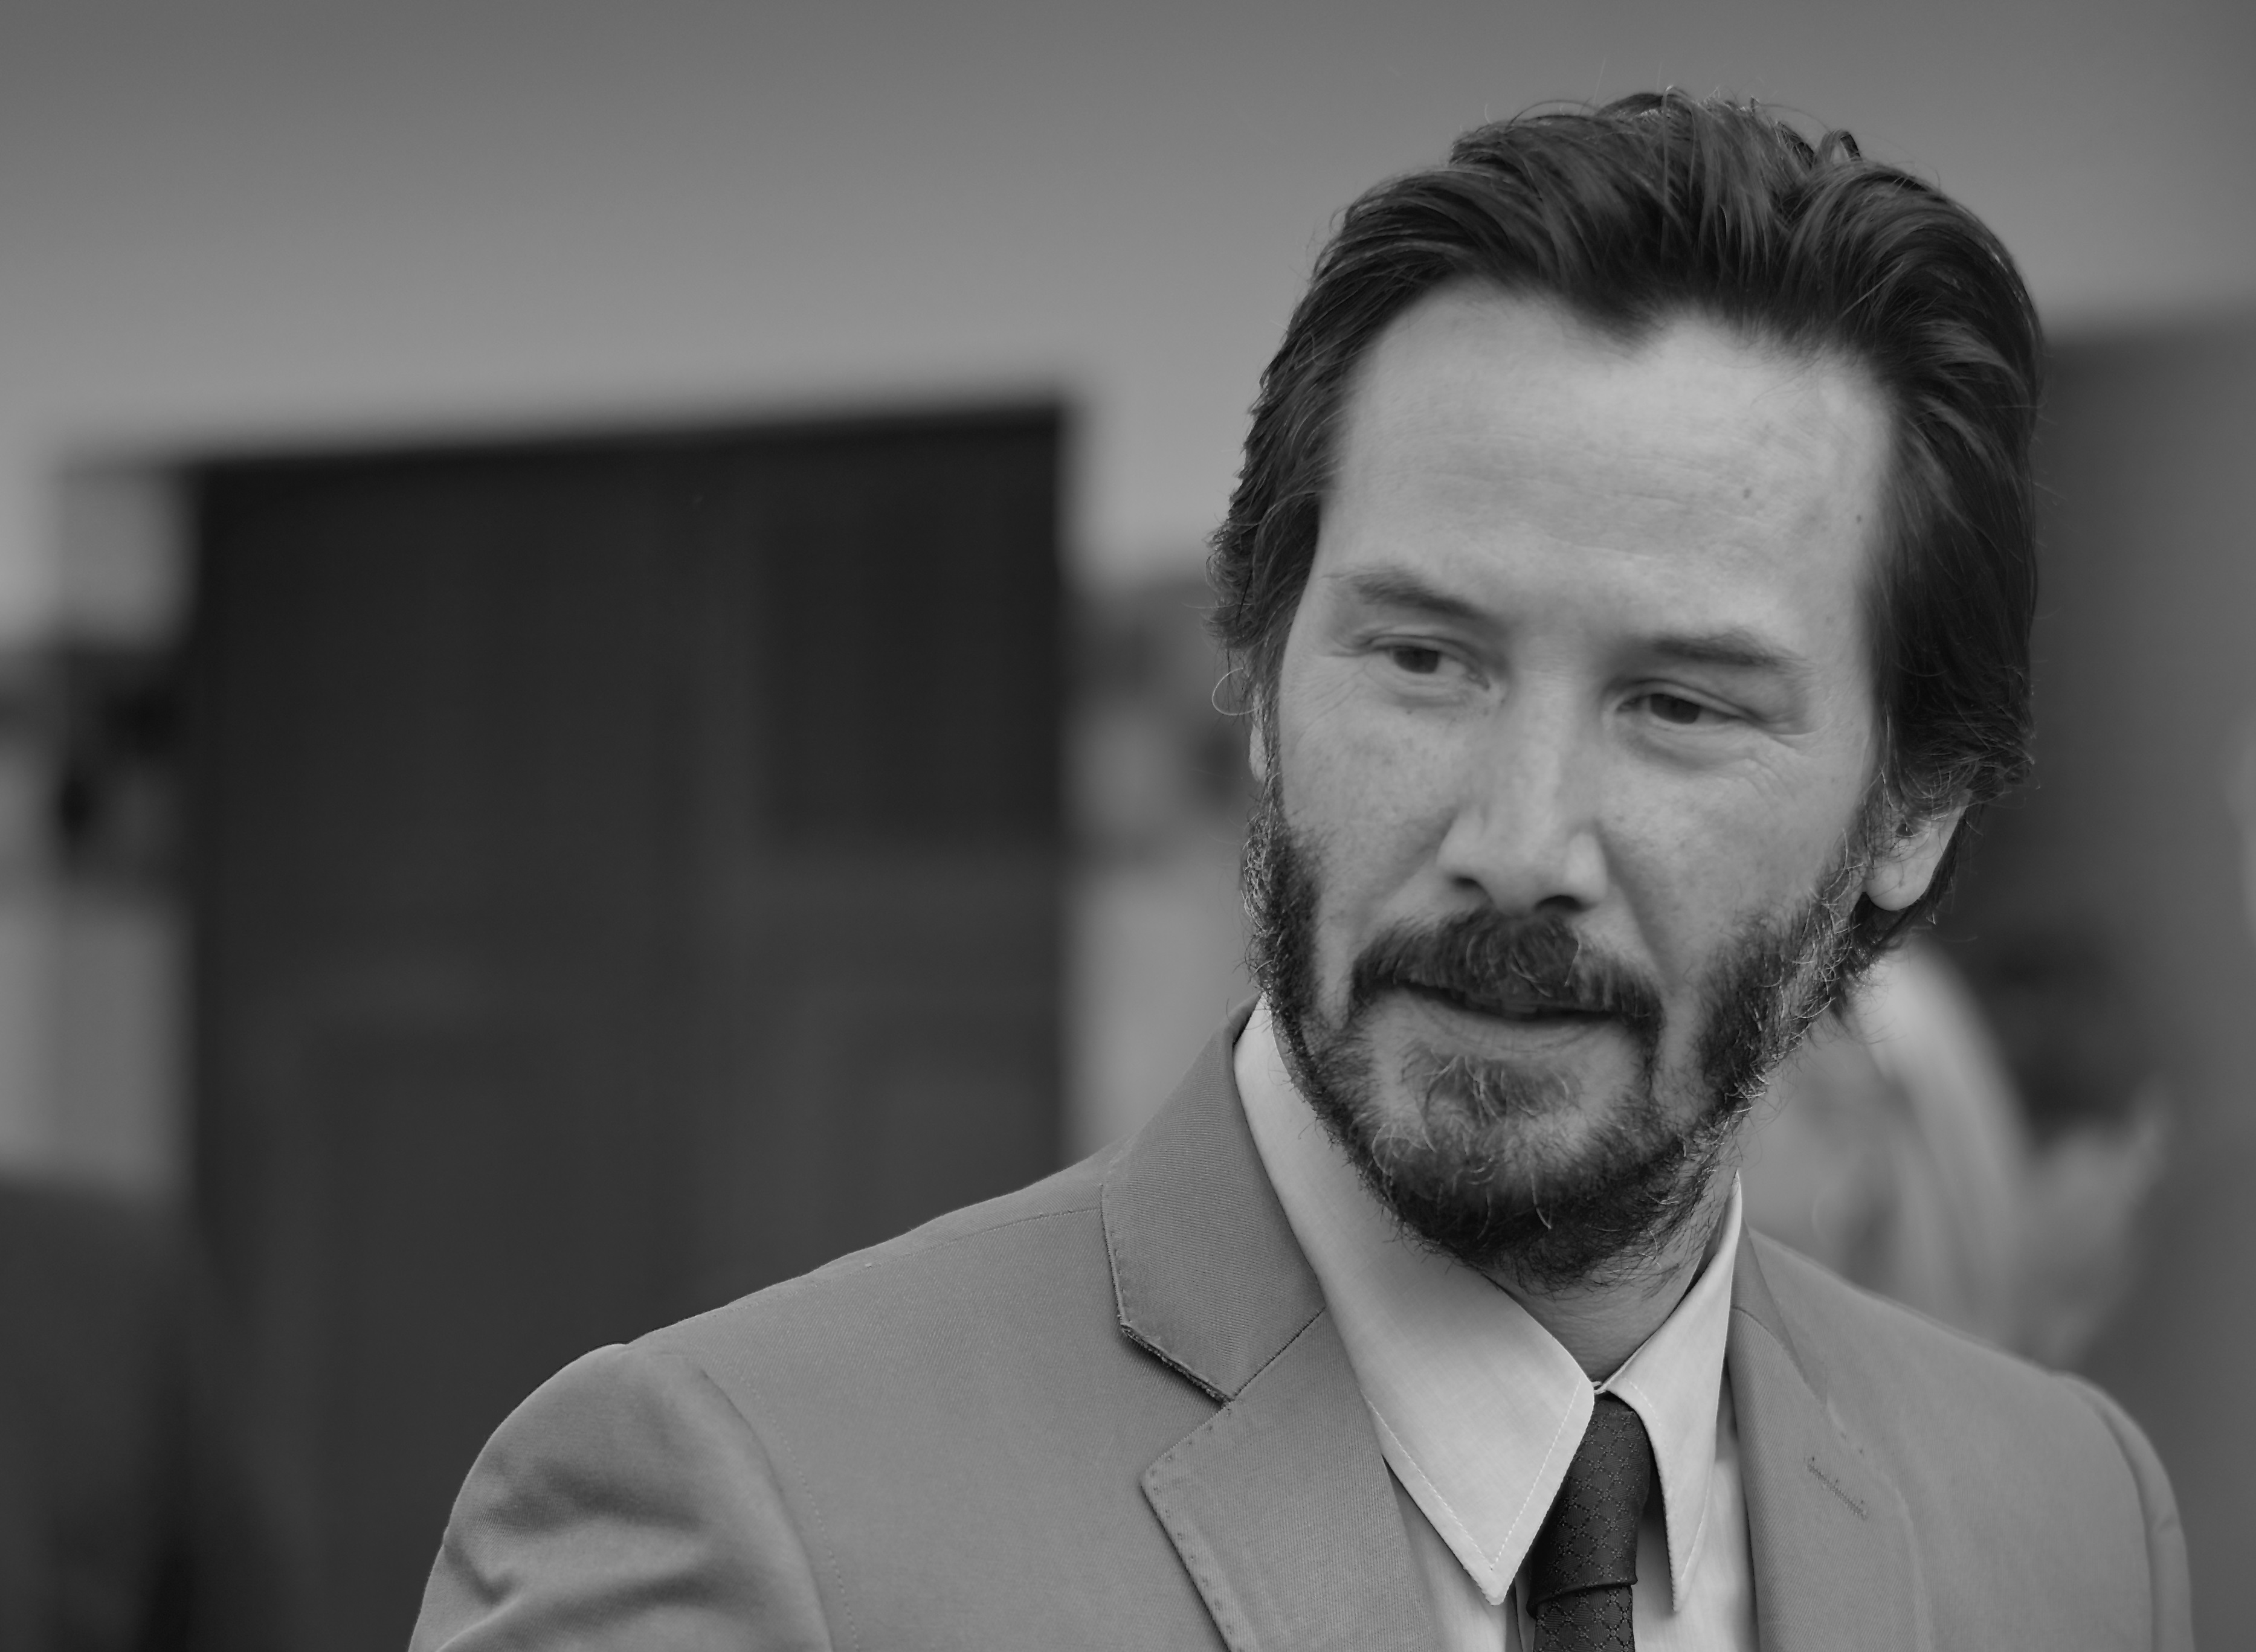 23 Keanu Reeves Quotes And Facts That Will Change Your Perspective